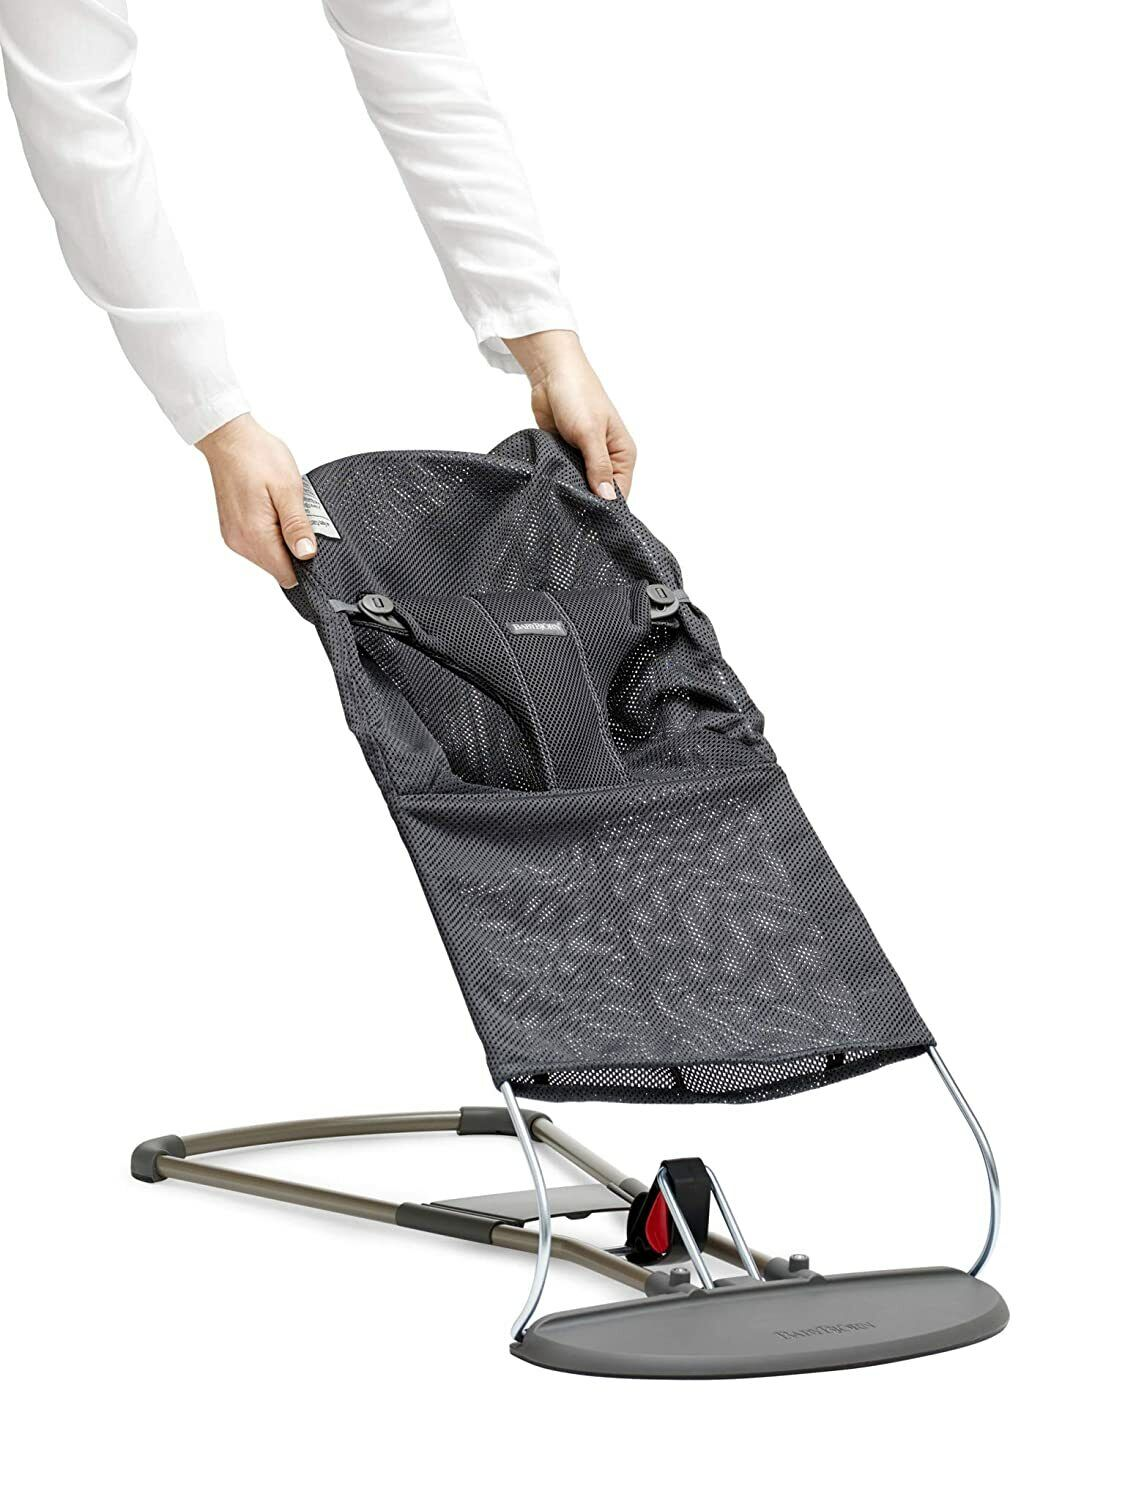 BabyBjörn Fabric Seat for Bouncer - Anthracite, Mesh, Anthr